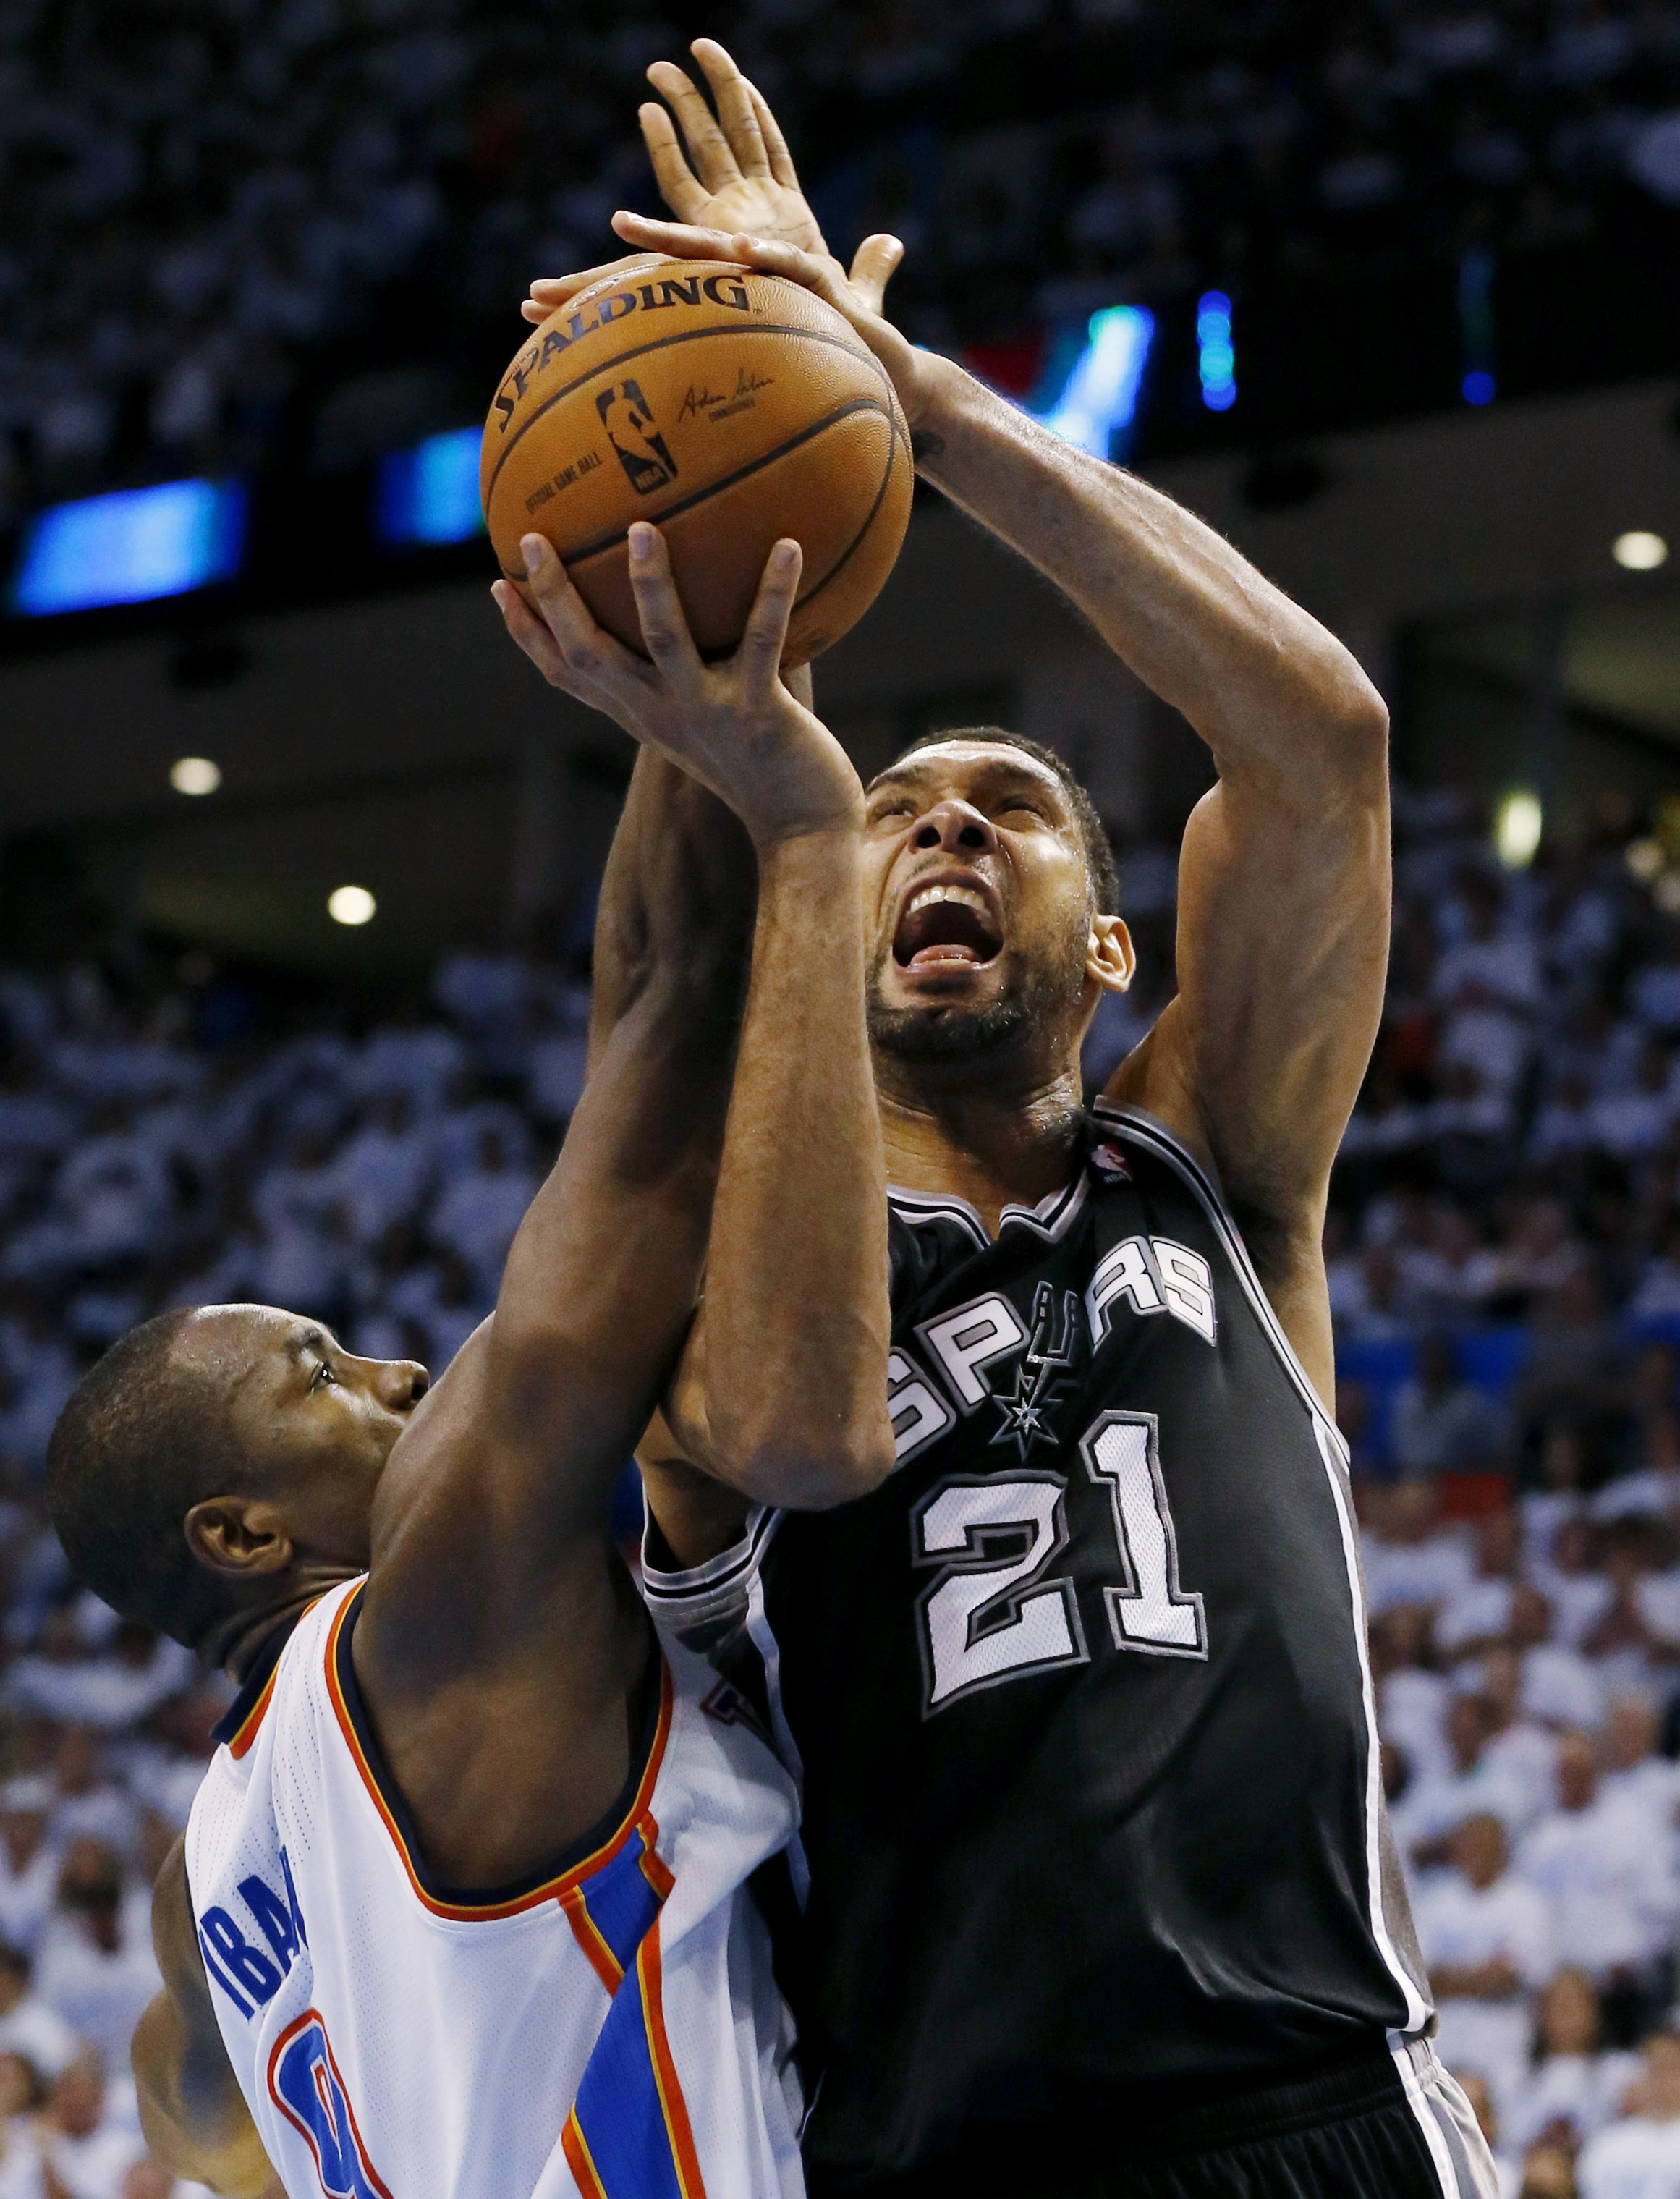 San Antonio forward Tim Duncan carried the Spurs on his back in Saturday night's overtime win against Oklahoma City.